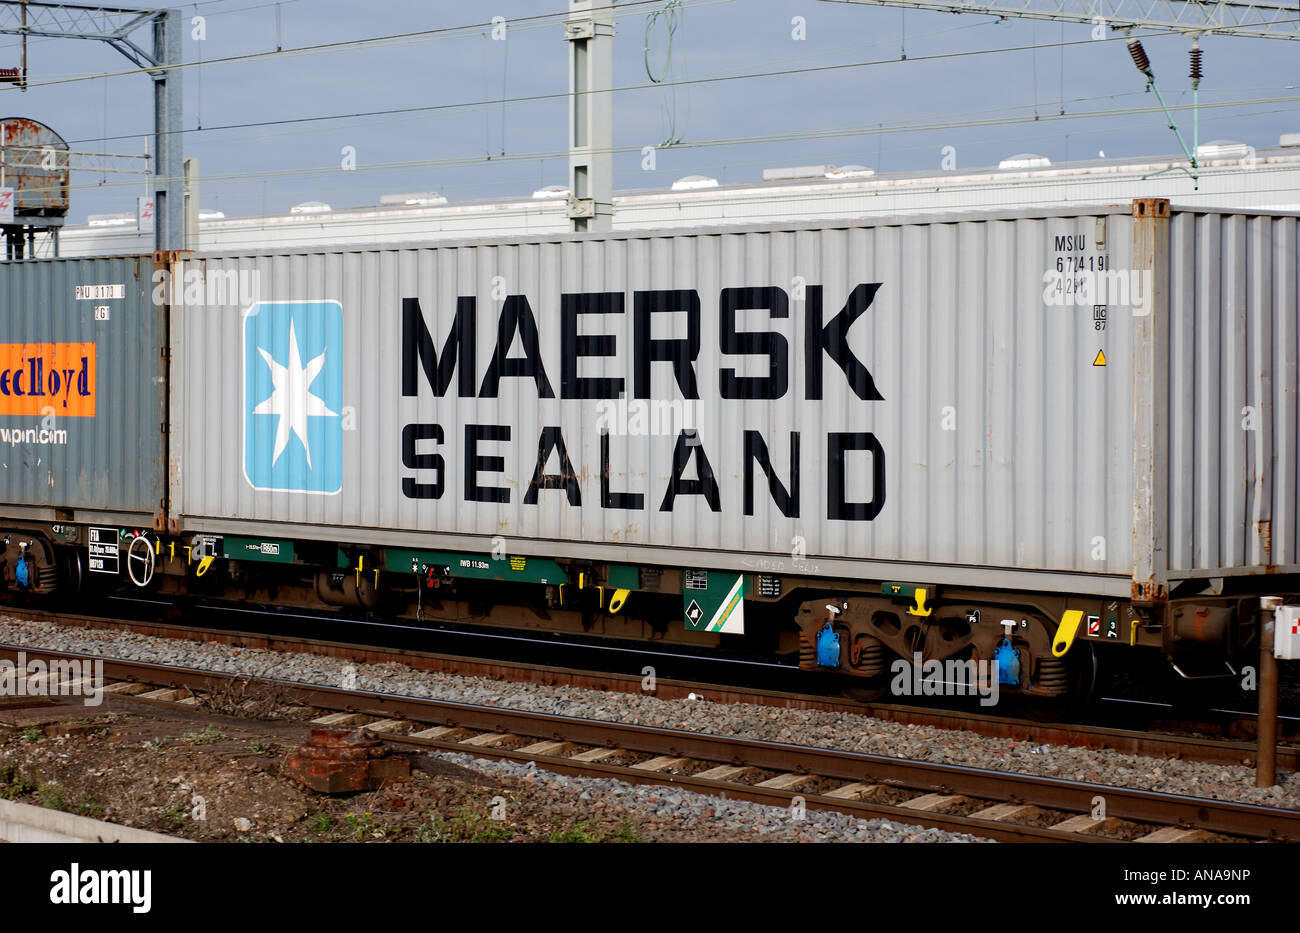 Maersk Sealand shipping container on train at Rugby, UK